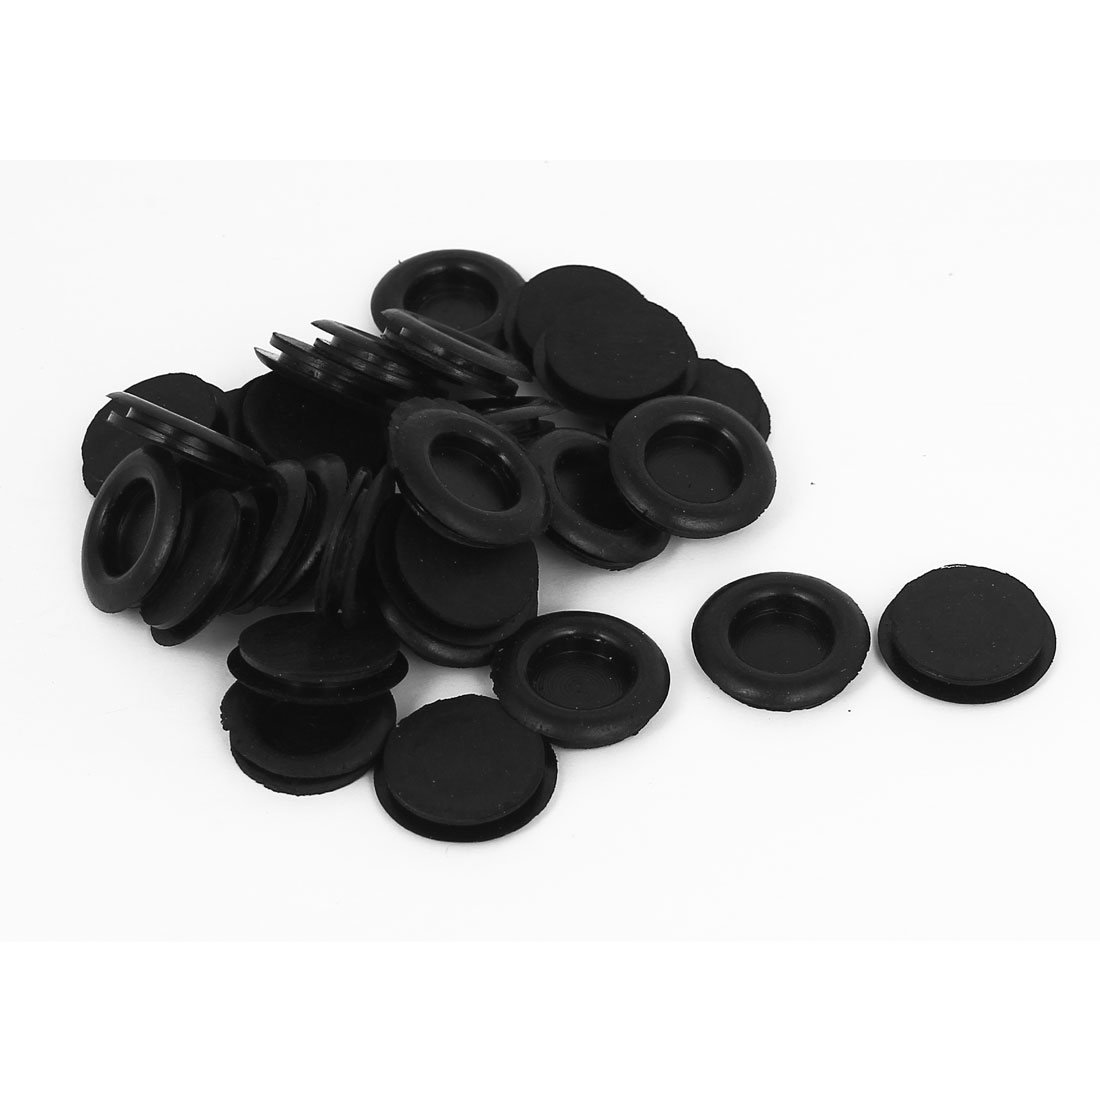 30pcs Black Rubber Closed Blind Blanking Hole Wire Cable Gasket Grommets 18mm